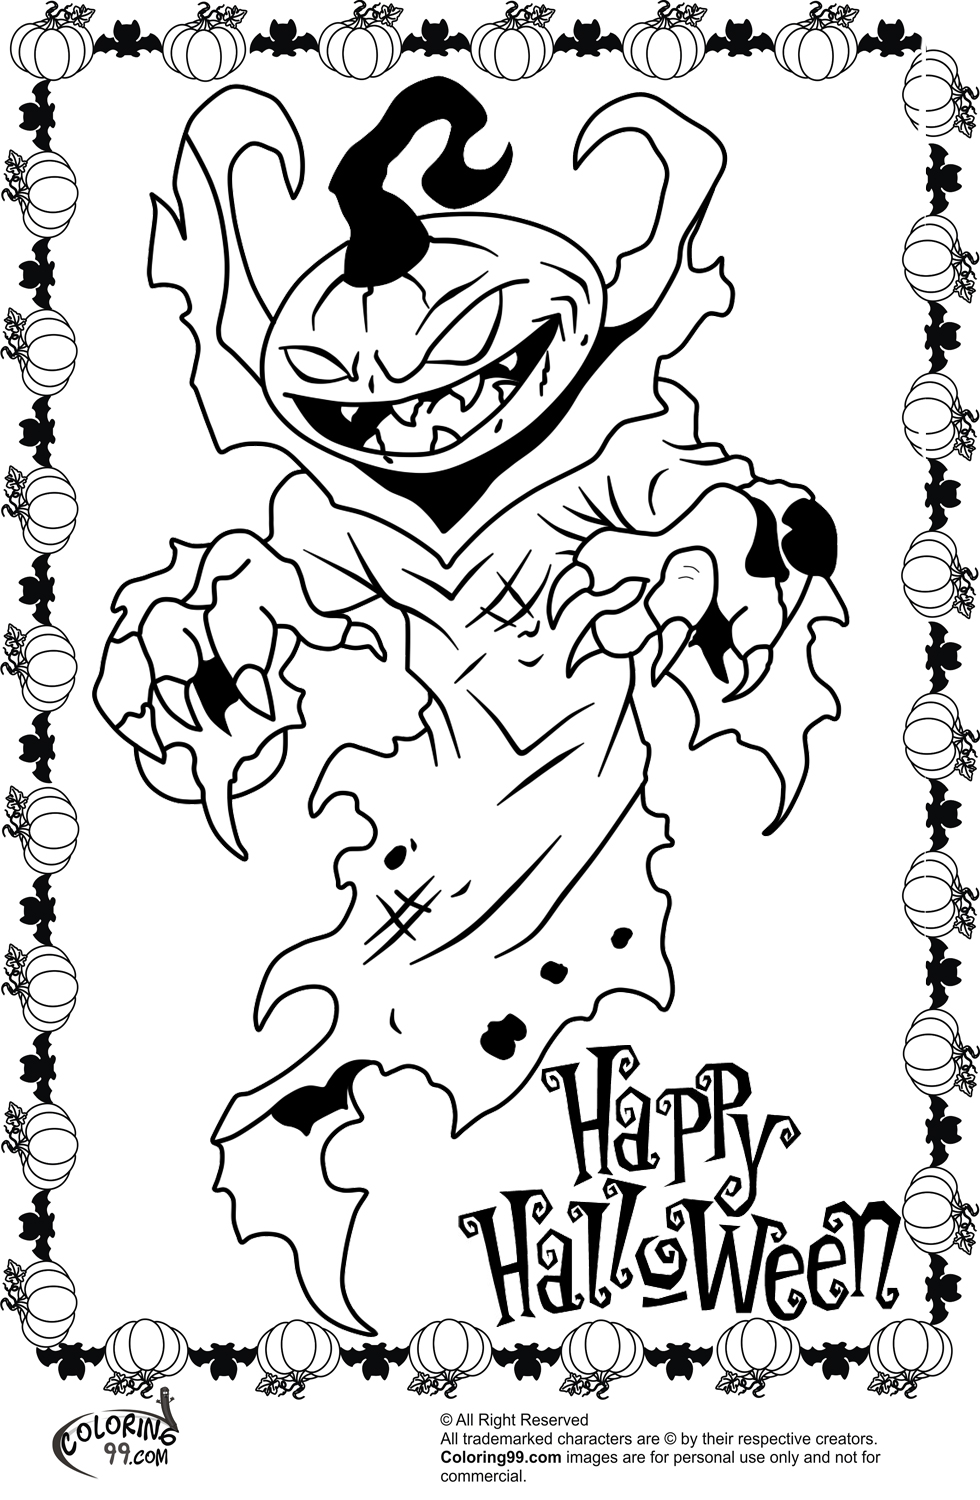 Scary Halloween Pumpkin Coloring Pages | Team colors